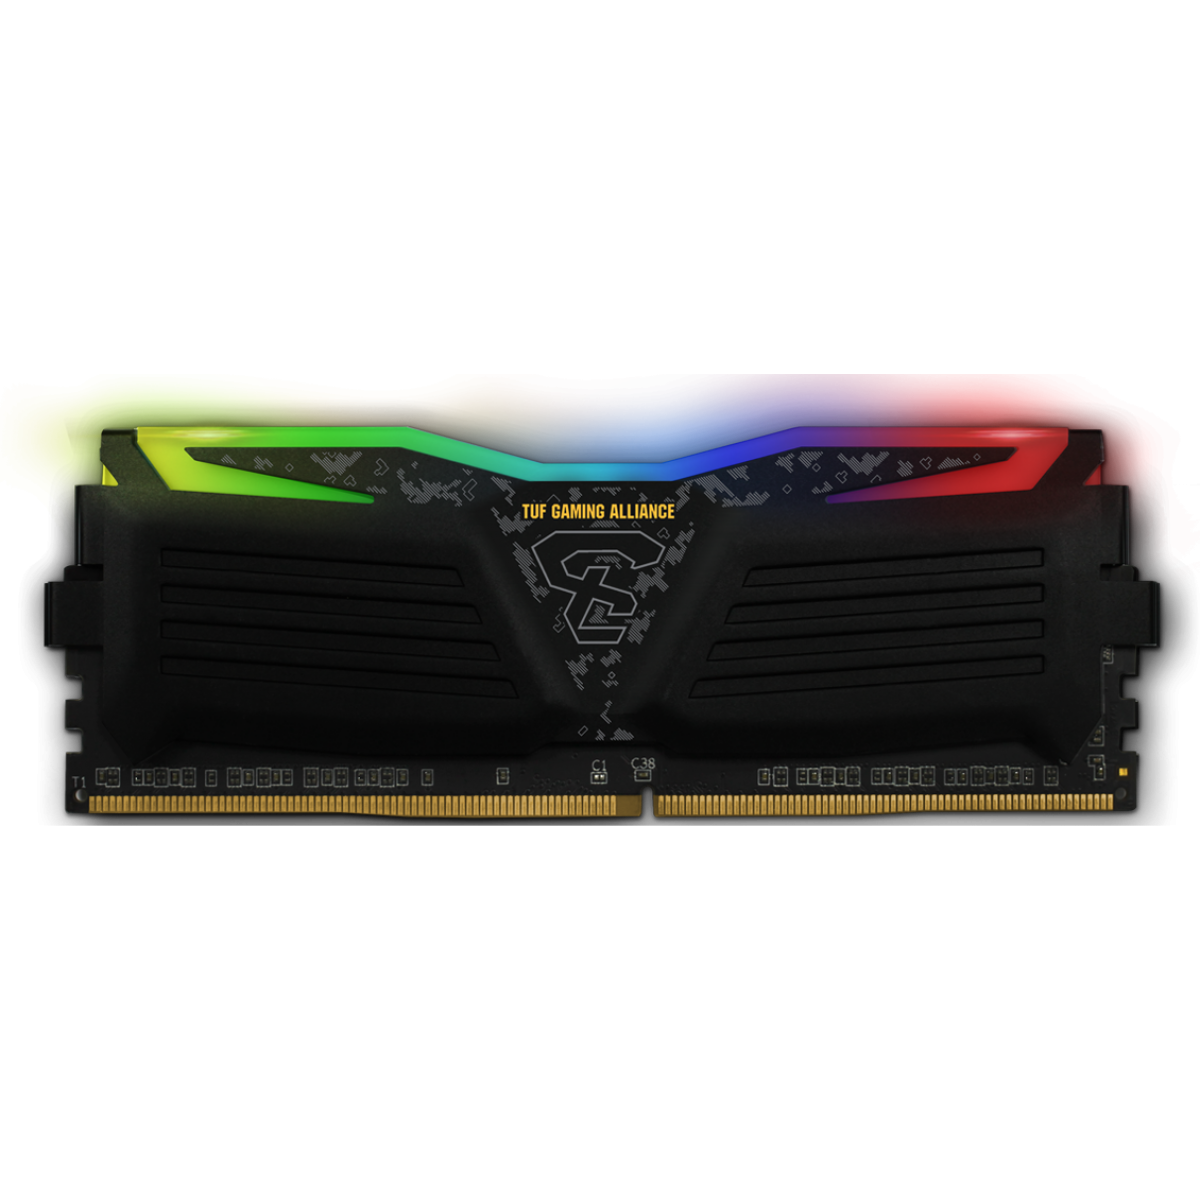 Memória DDR4 Geil Super Luce RGB TUF Gaming Alliance AMD Edition, 8GB 3000Mhz, GALTS48GB3000C16ASC